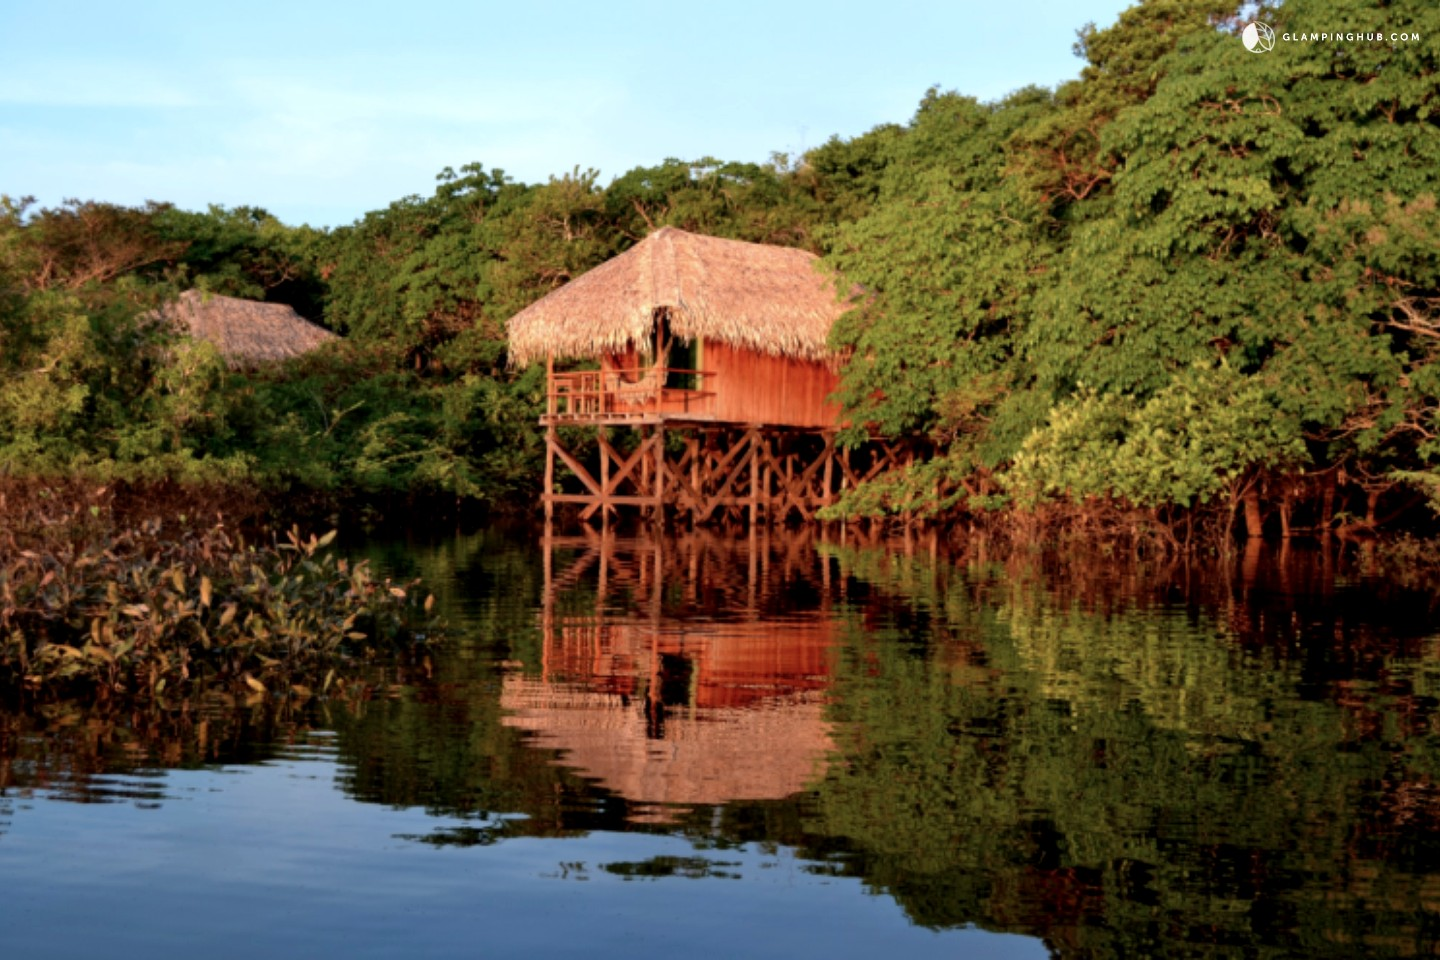 Photo of Bungalow Lodges Overlooking River in Amazon Rainforest near Manaus, Brazil